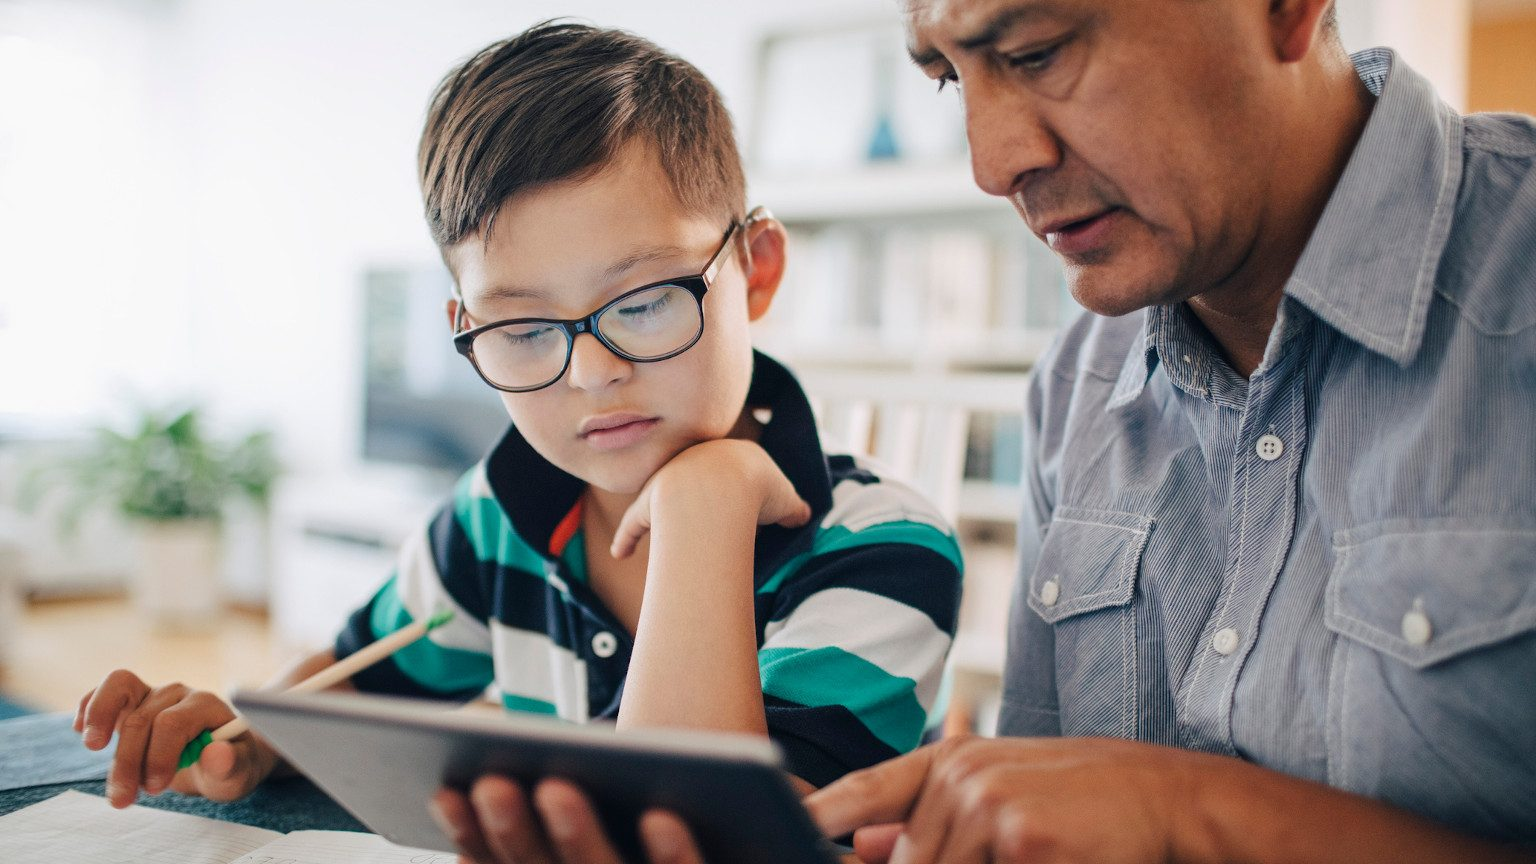 Home schooling with tablets